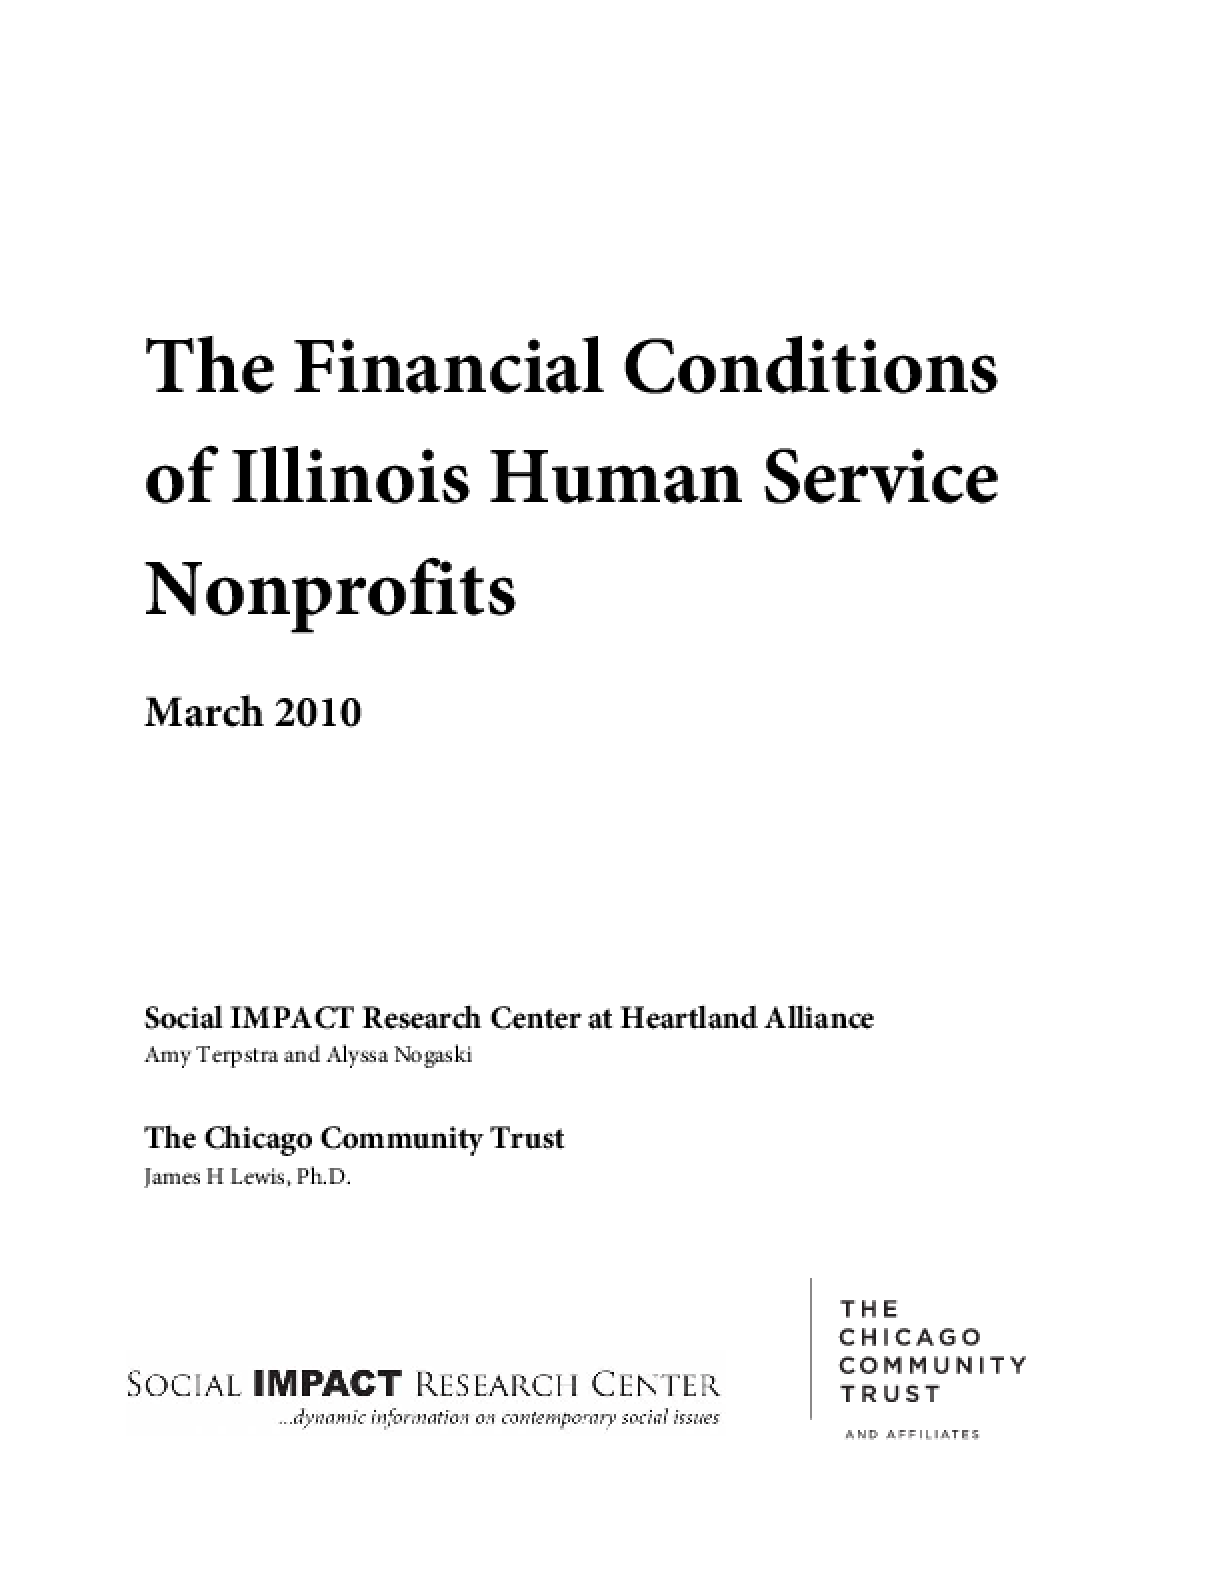 The Financial Conditions of Illinois Human Service Nonprofits